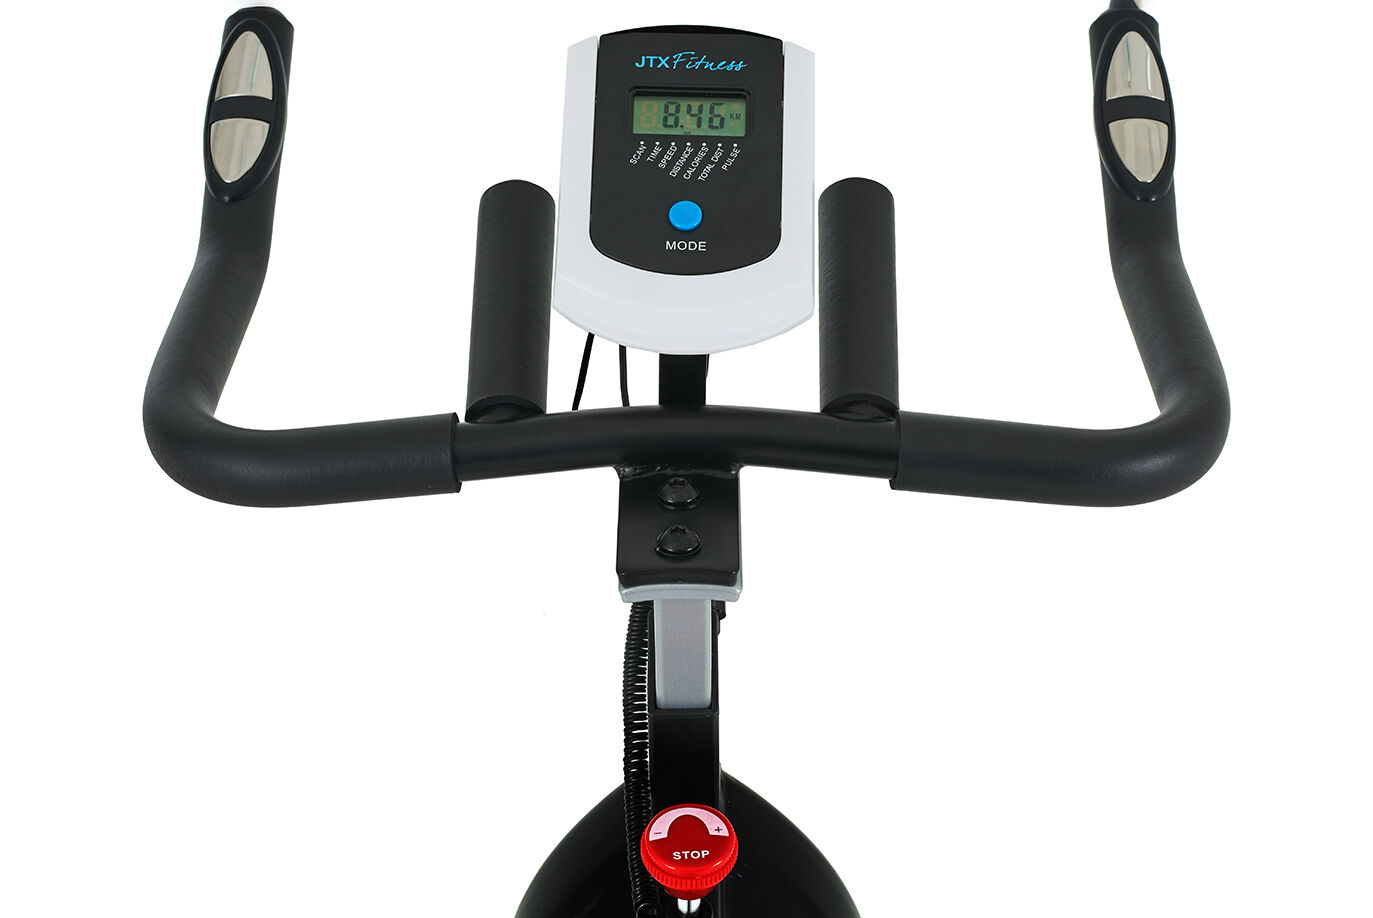 JTX Cyclo 3 Indoor Racer Console